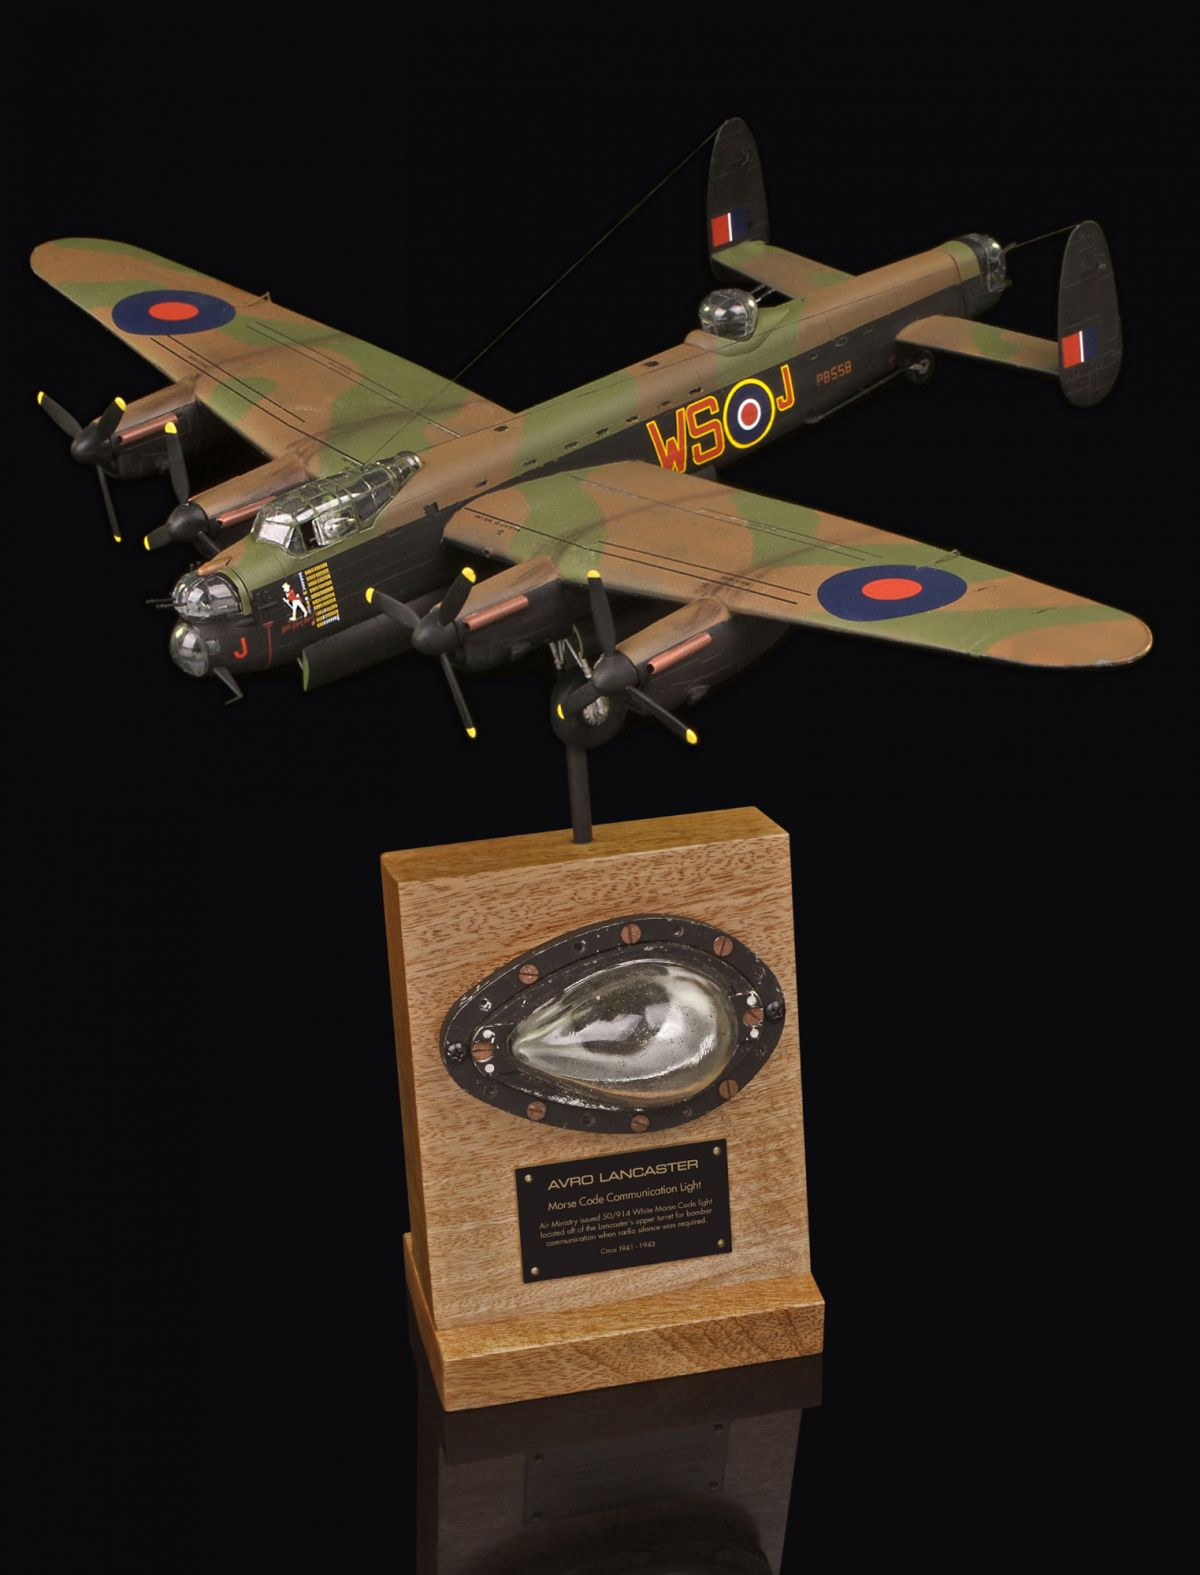 AVRO LANCASTER MORSE CODE COMMUNICATION LAMP